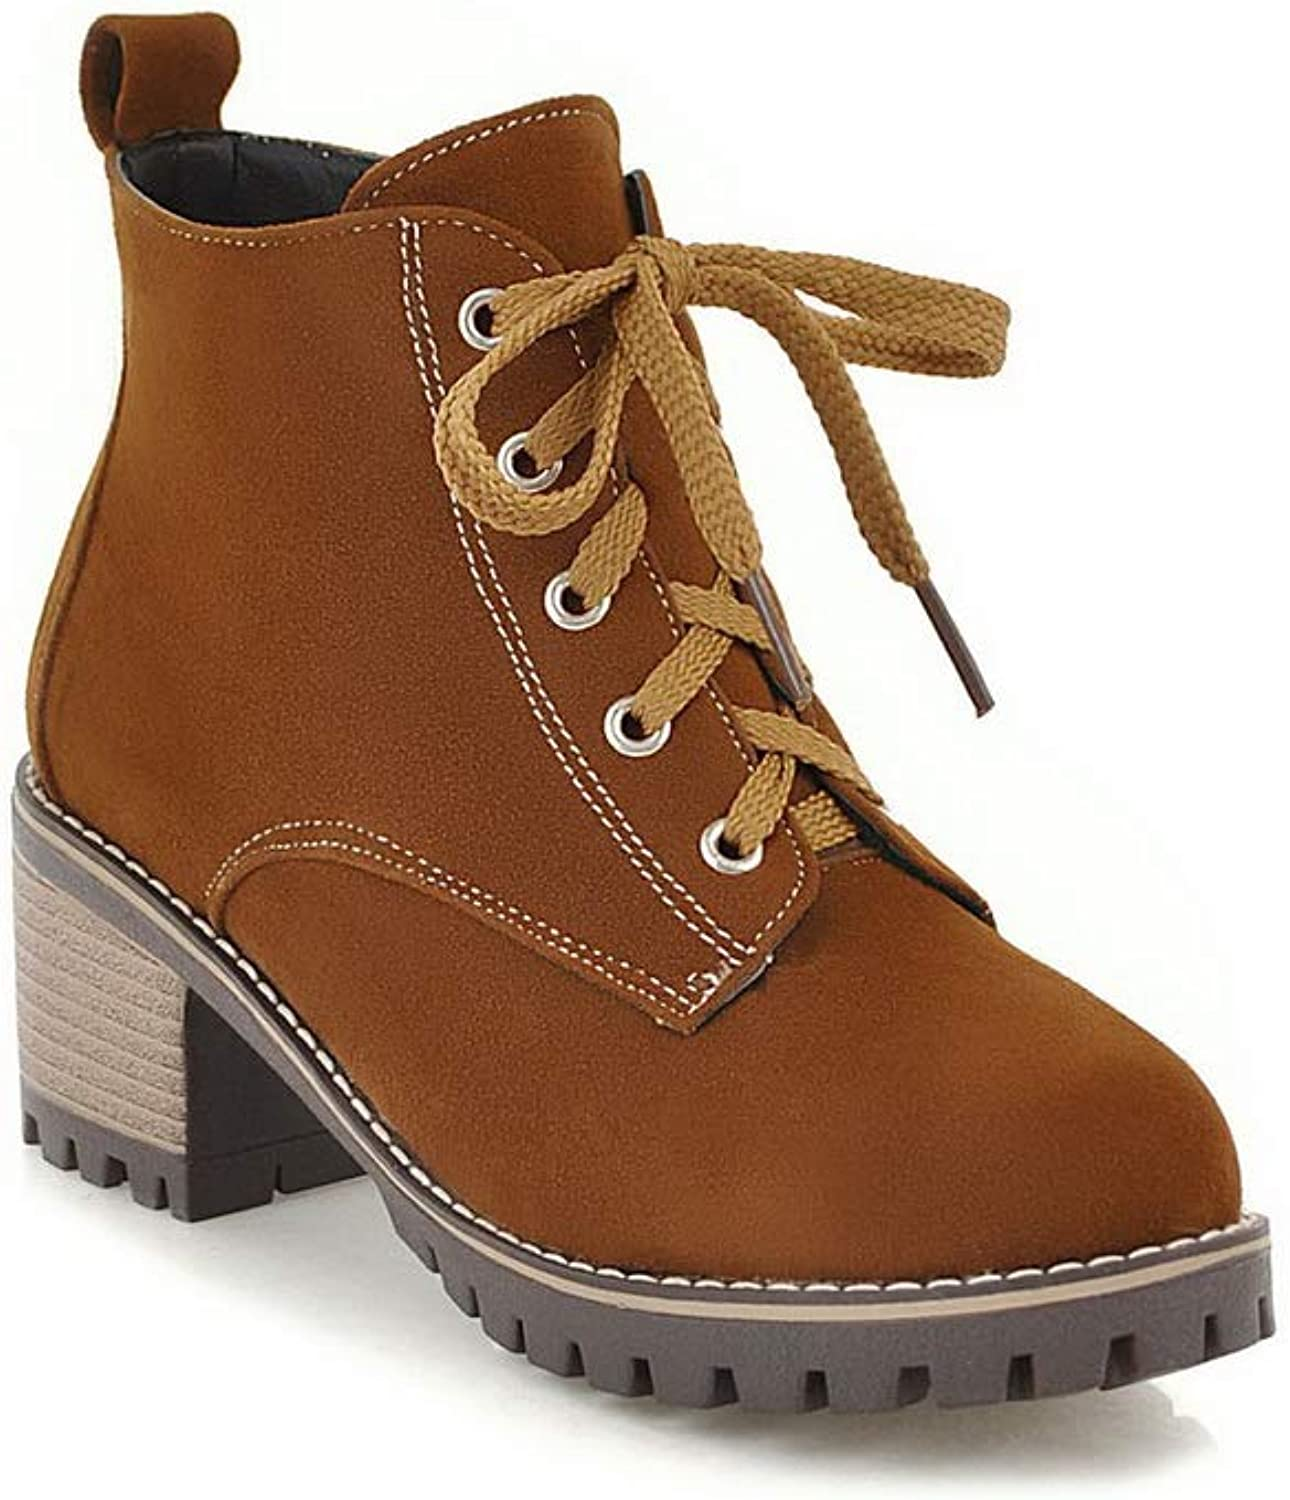 AdeeSu Womens Ruched Solid Boots Urethane Boots SXC02796